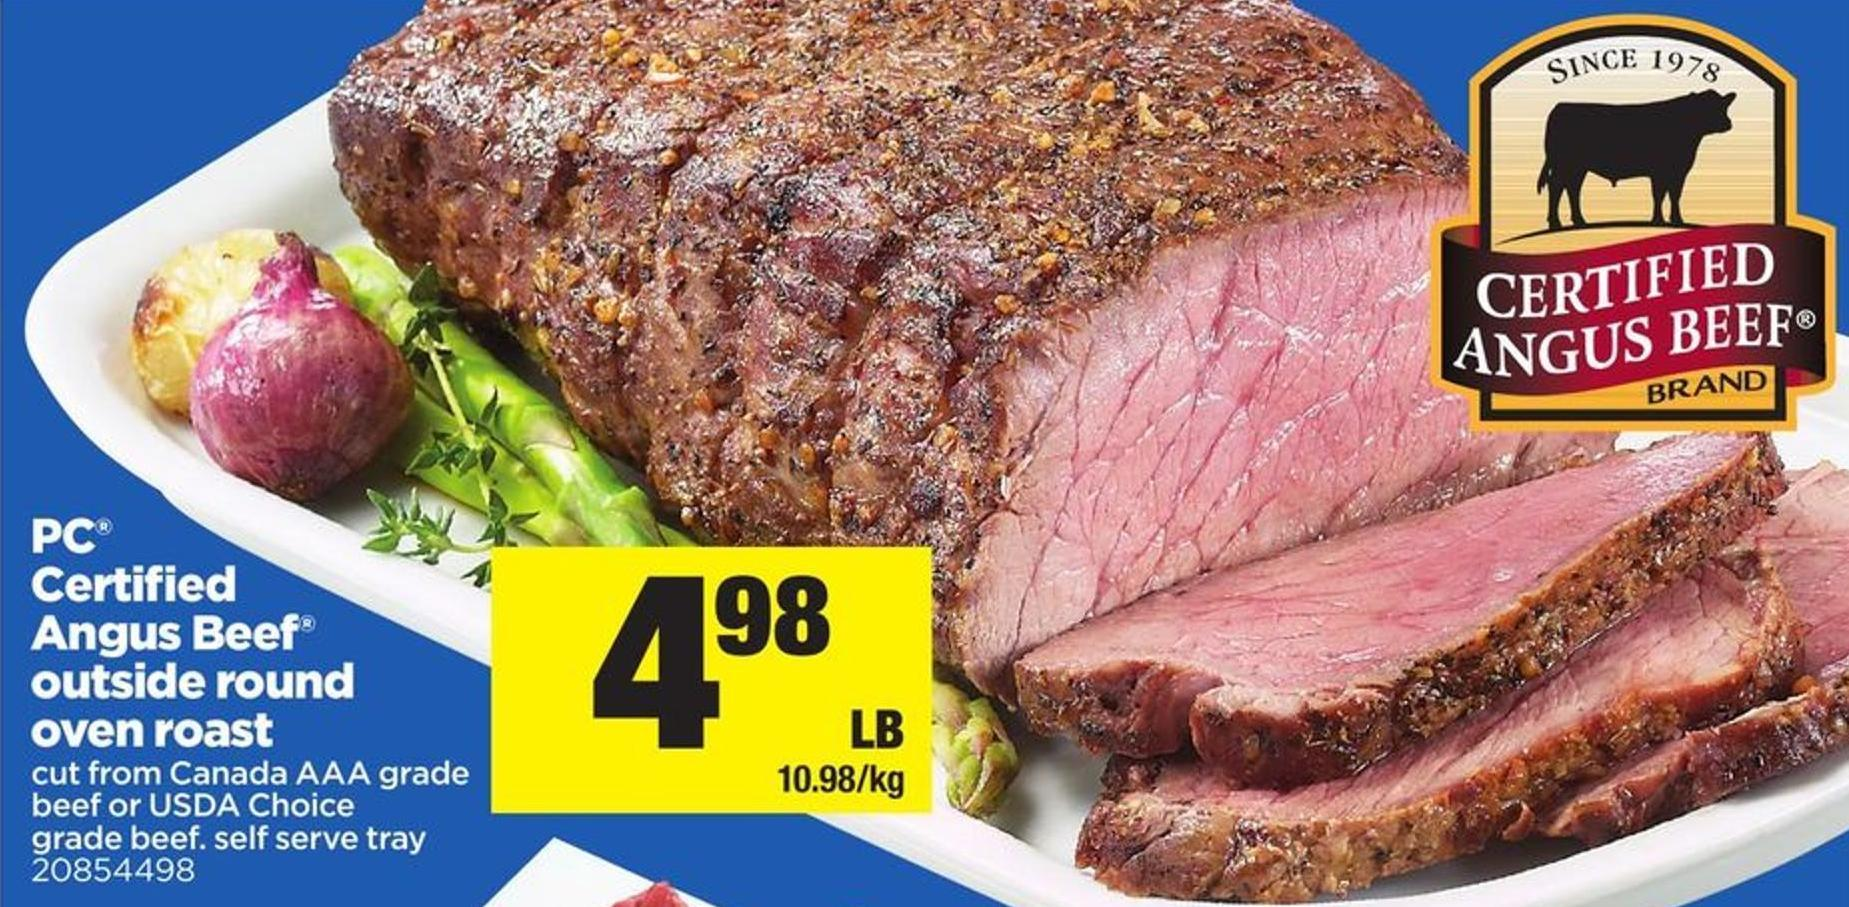 PC Certified Angus Beef Outside Round Oven Roast